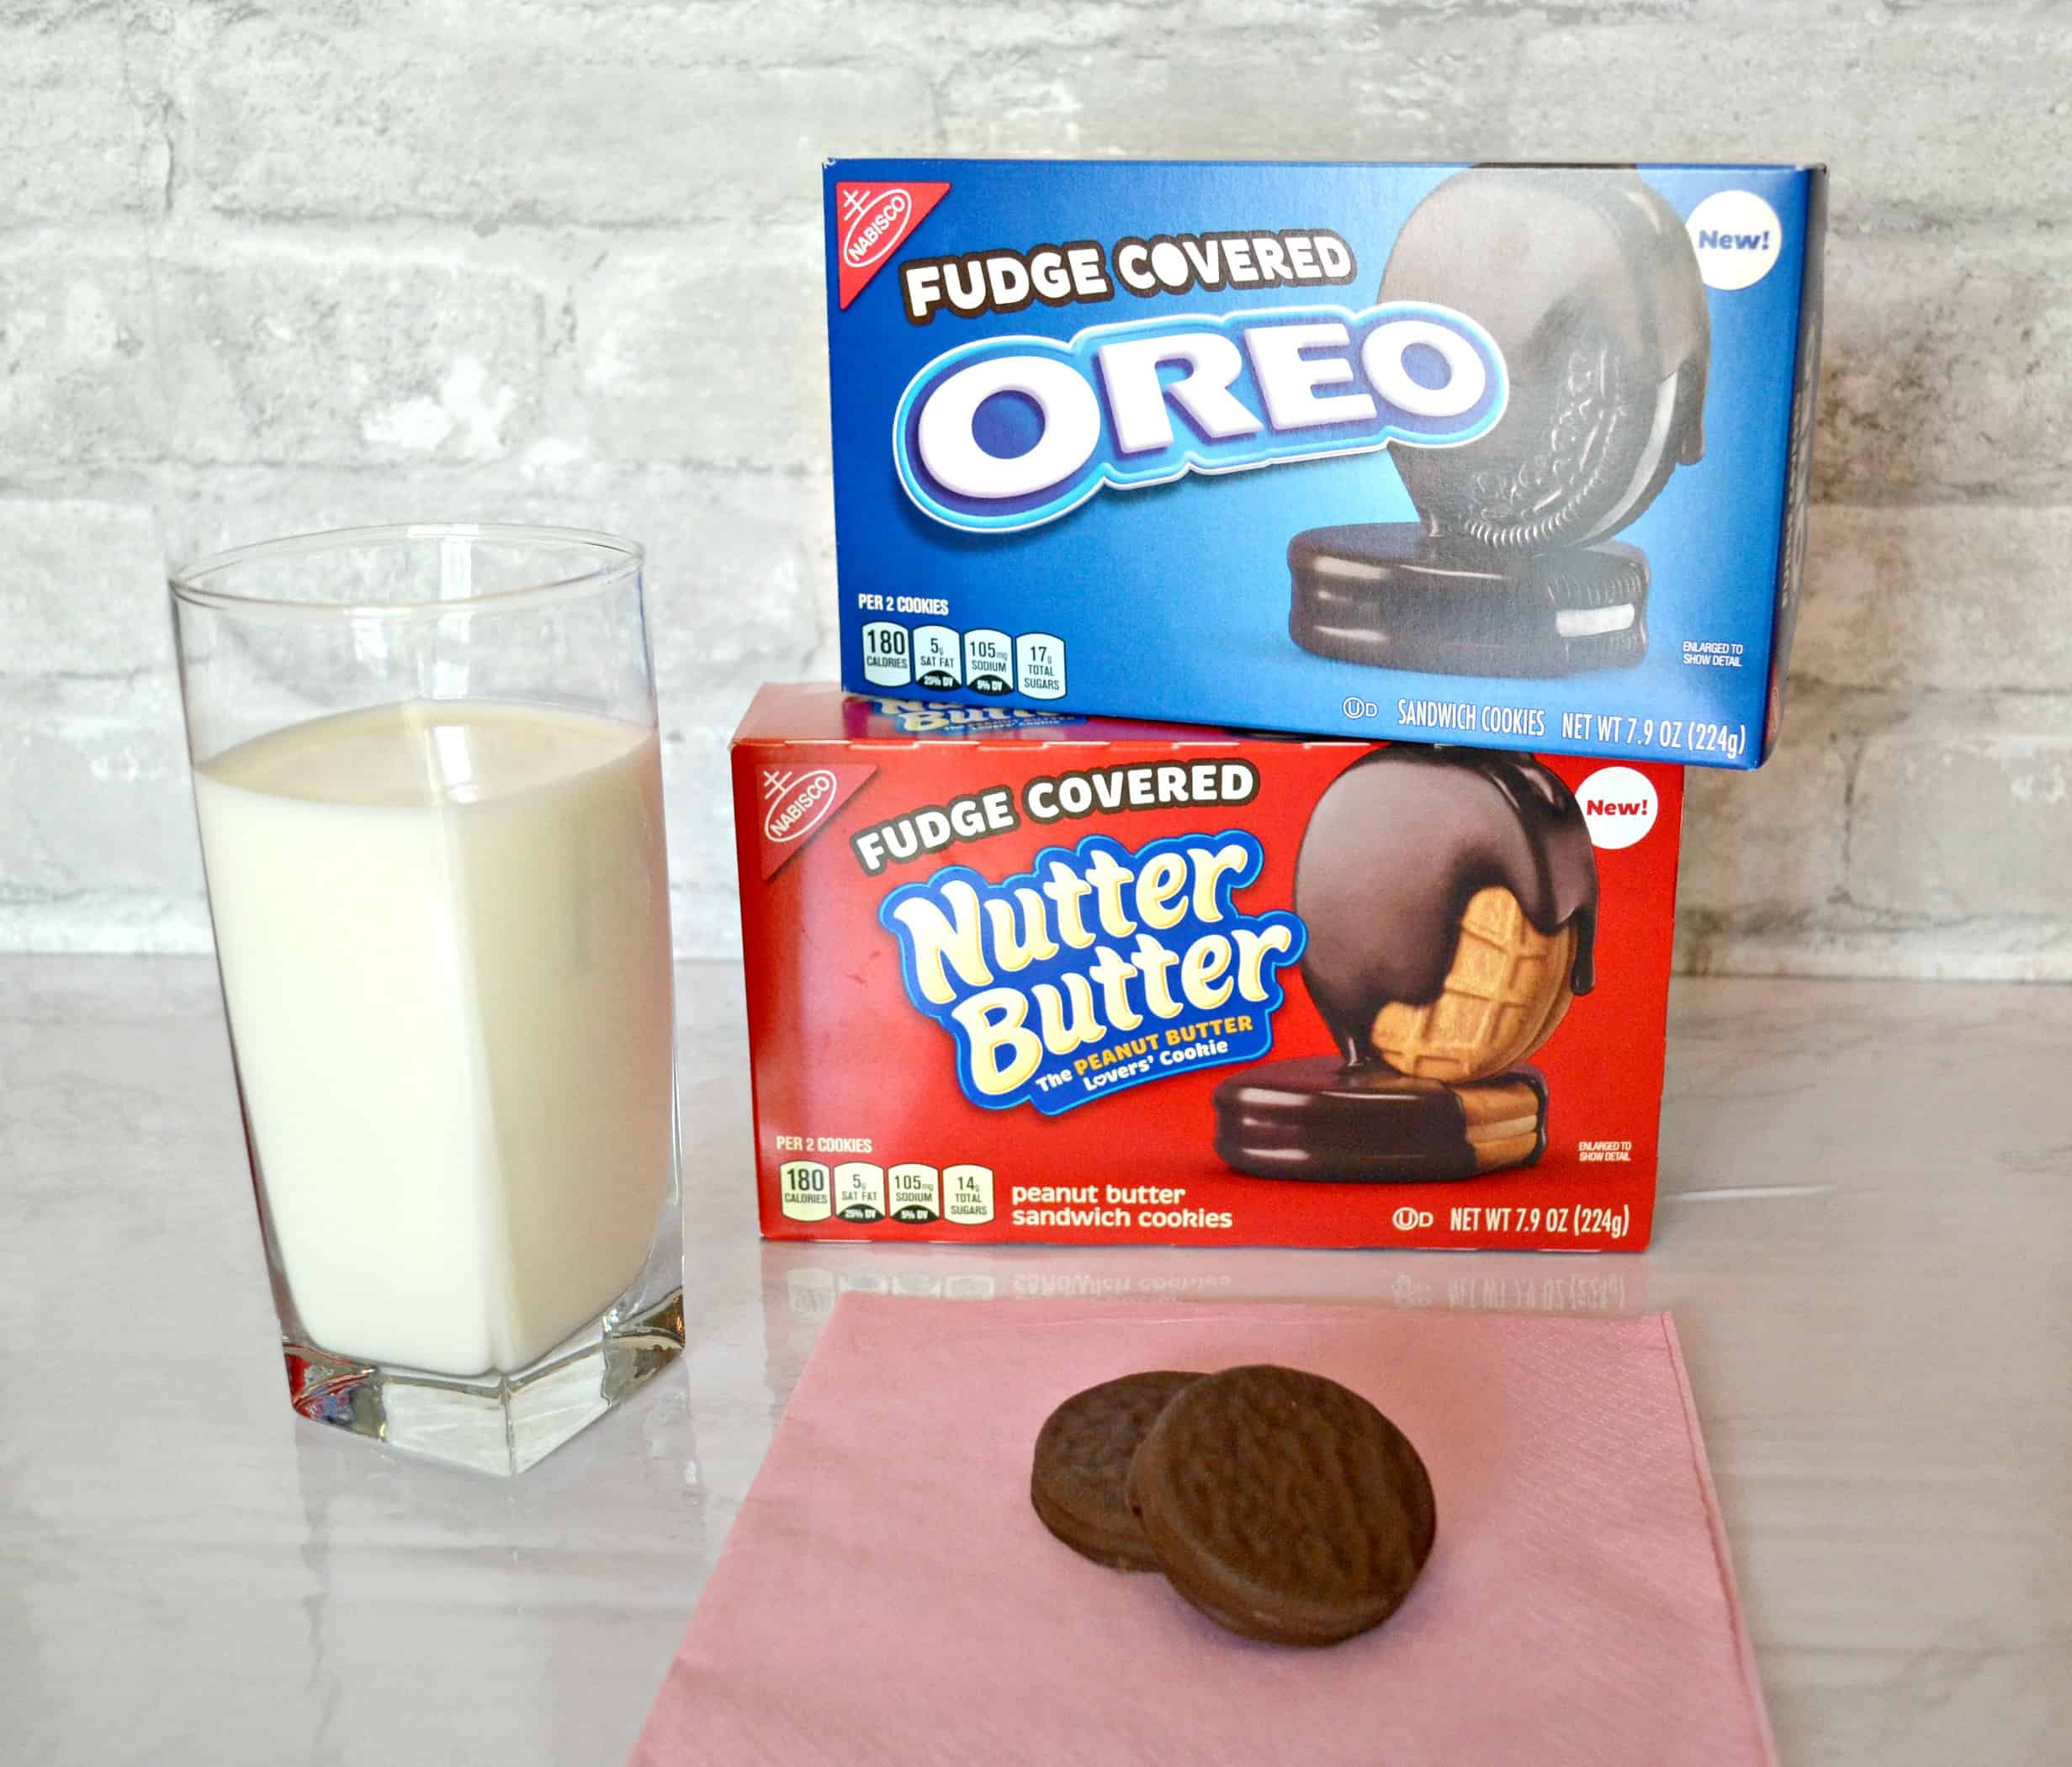 Rewards are the trick to staying productive. Try the Fudge Covered OREO cookies.